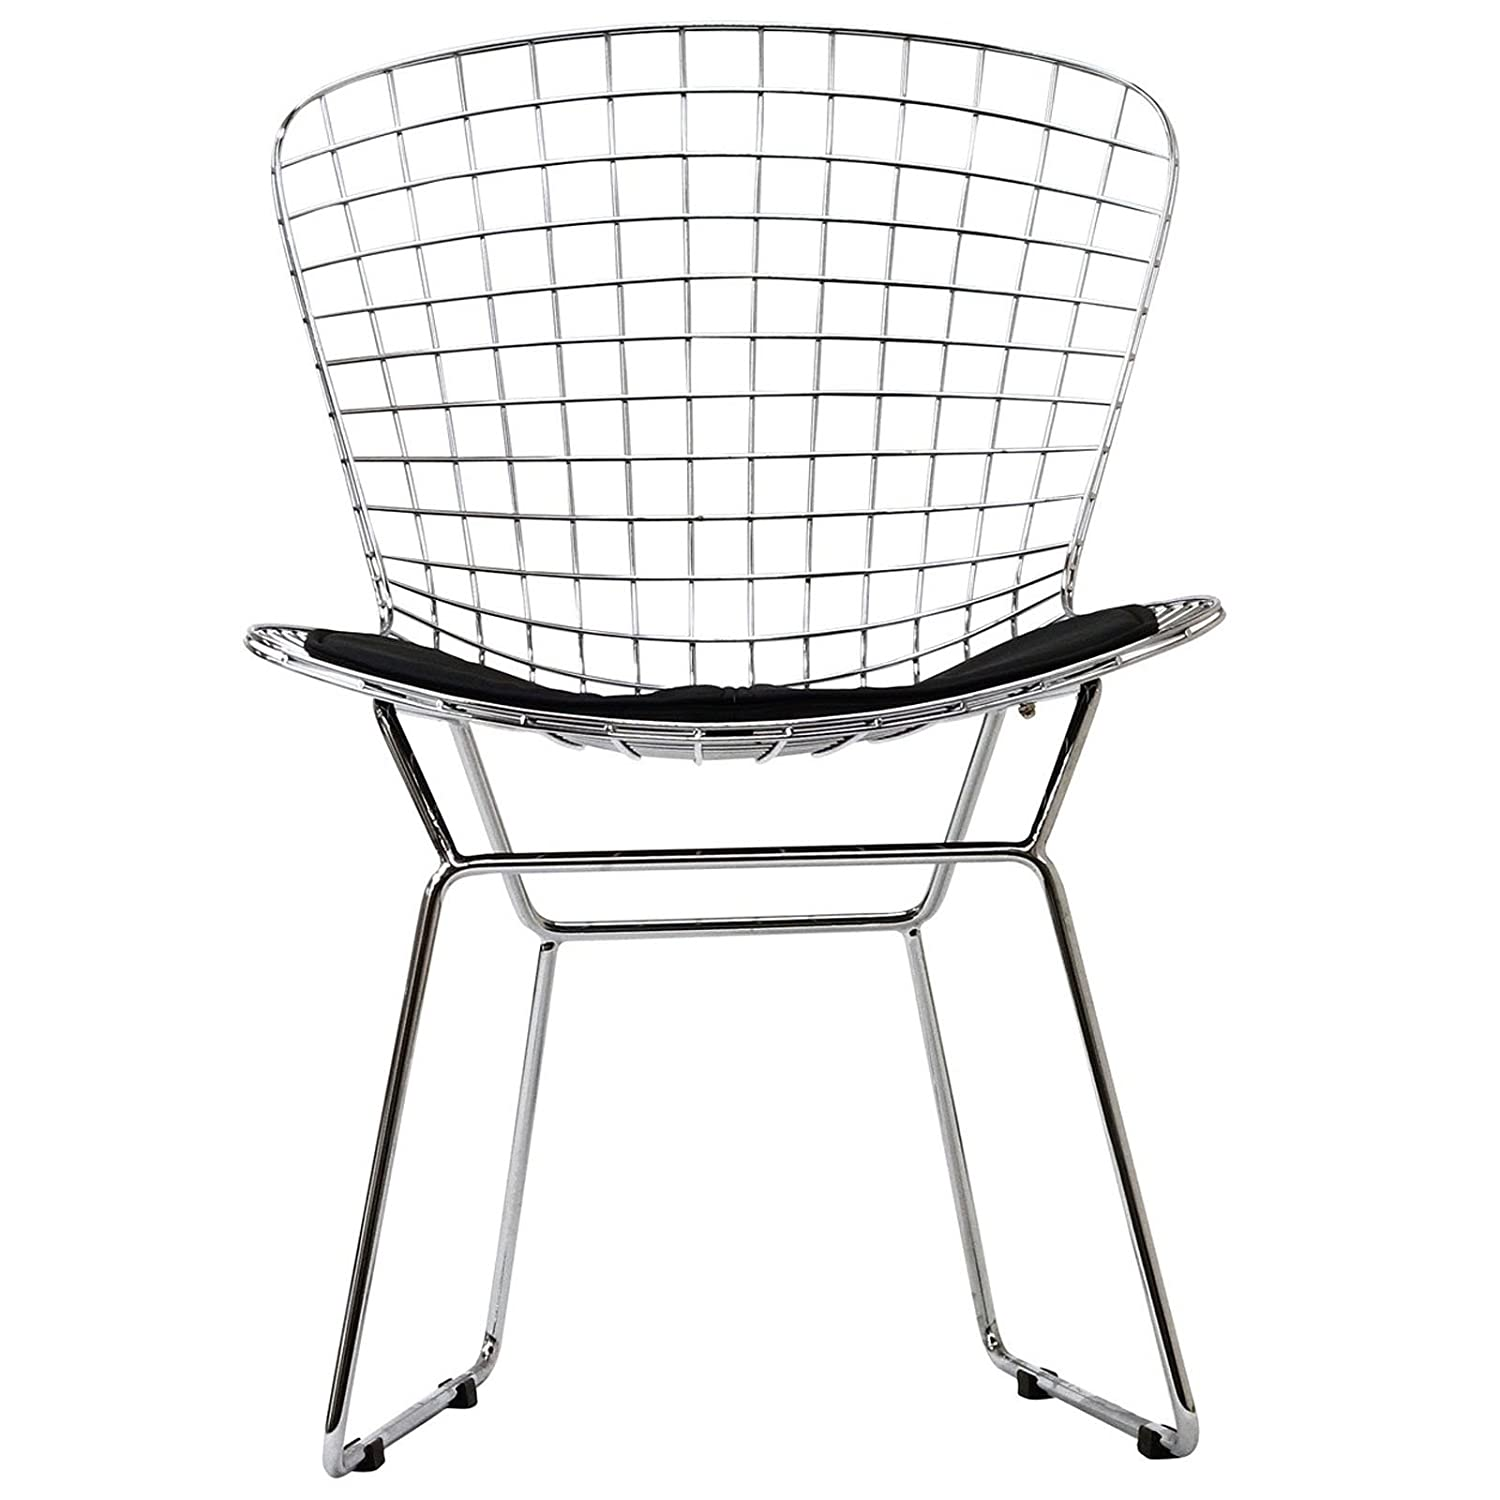 Chair wire chairs missing cover - Amazon Com Modway Bertoia Style Side Chair With Black Cushion Chairs